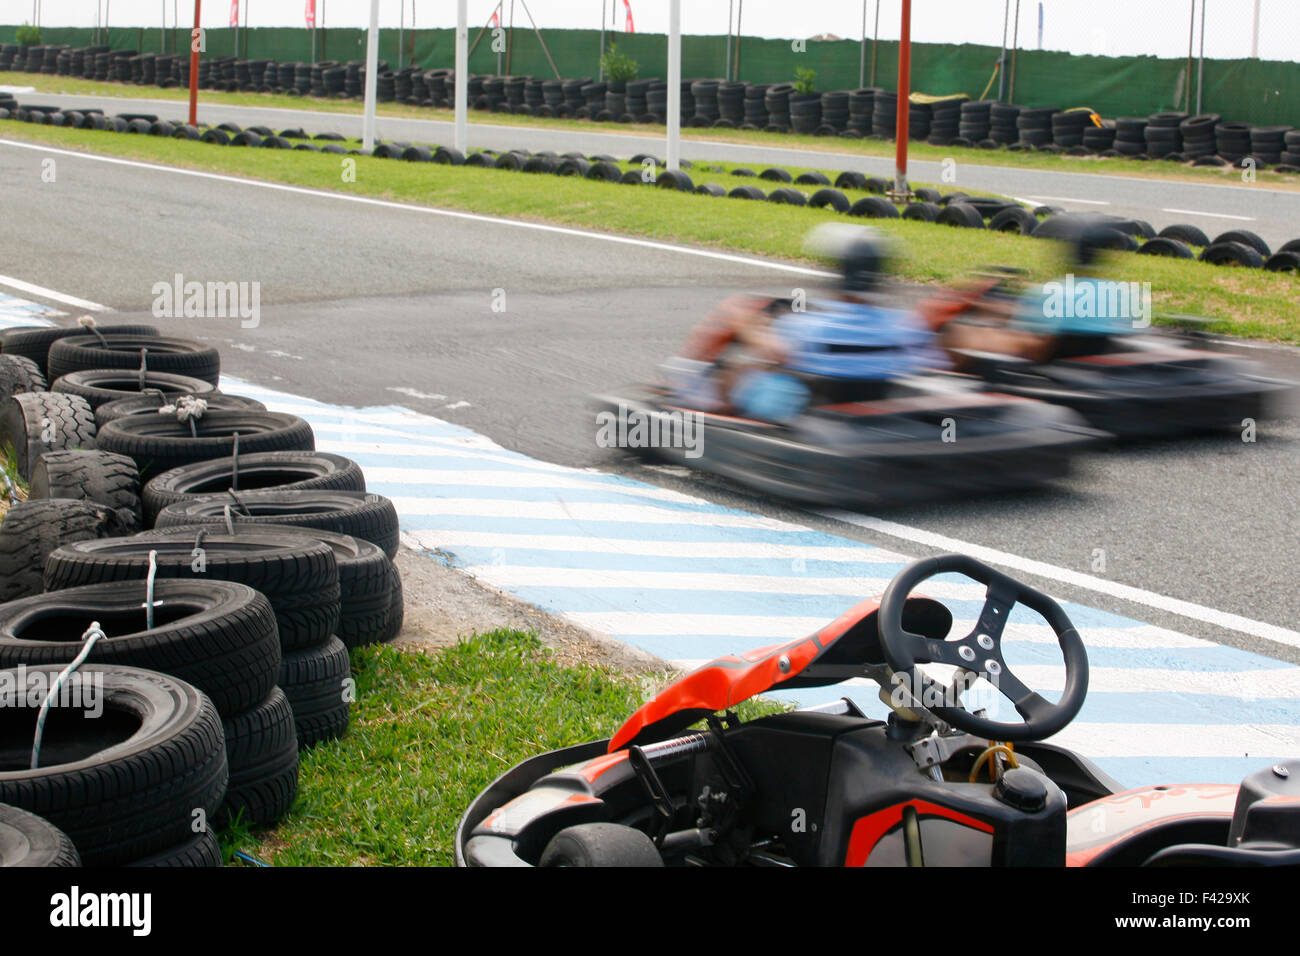 Unknown pilots having fun at karting track , Spain - Stock Image